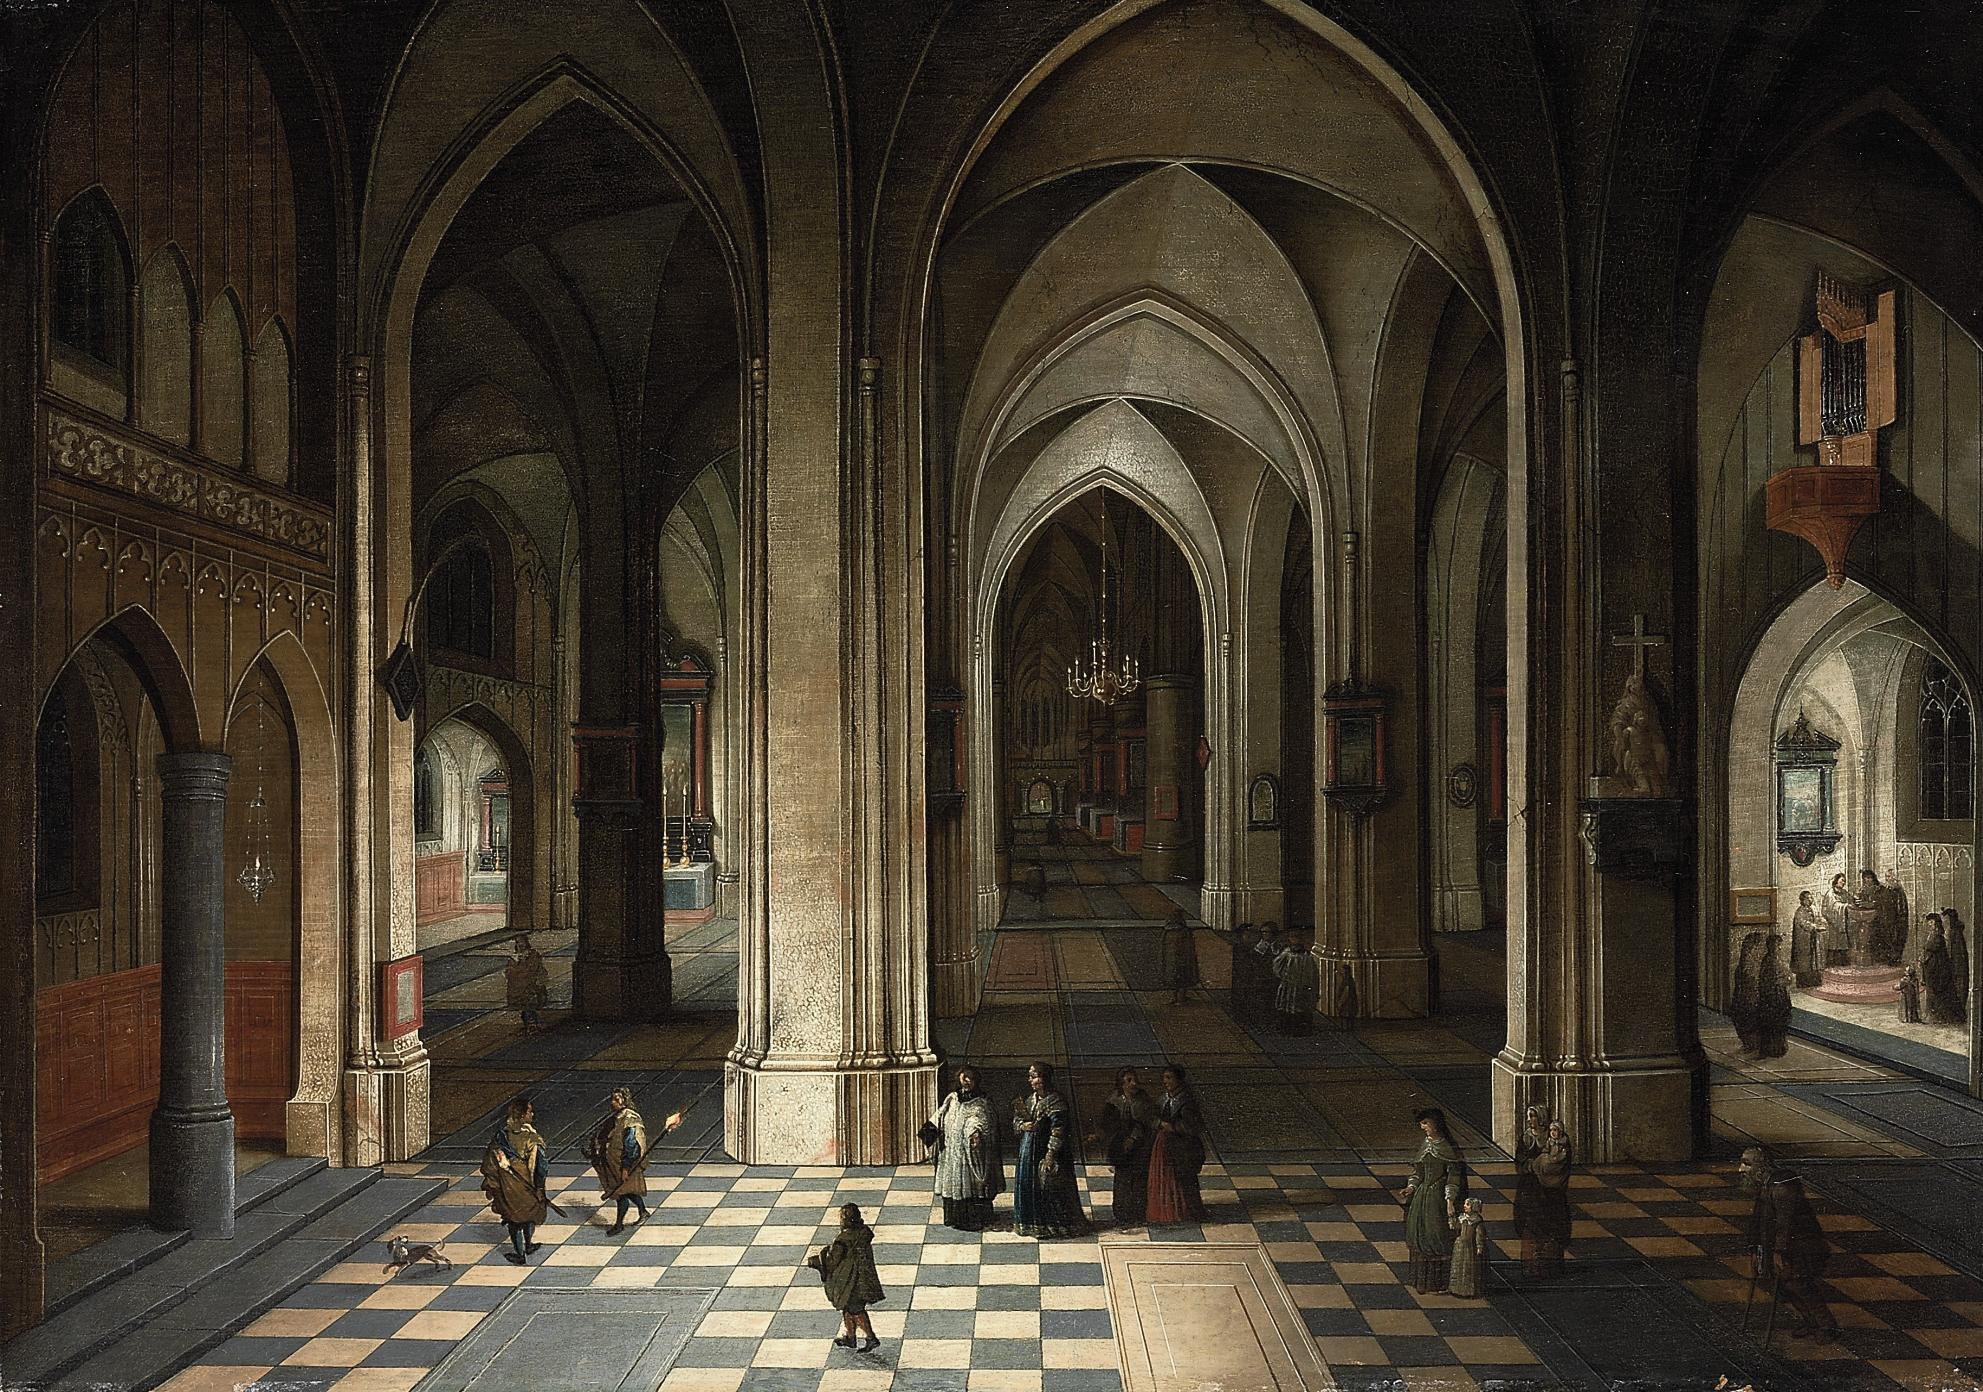 The interior of a cathedral at night, with elegant figures attending a Mass